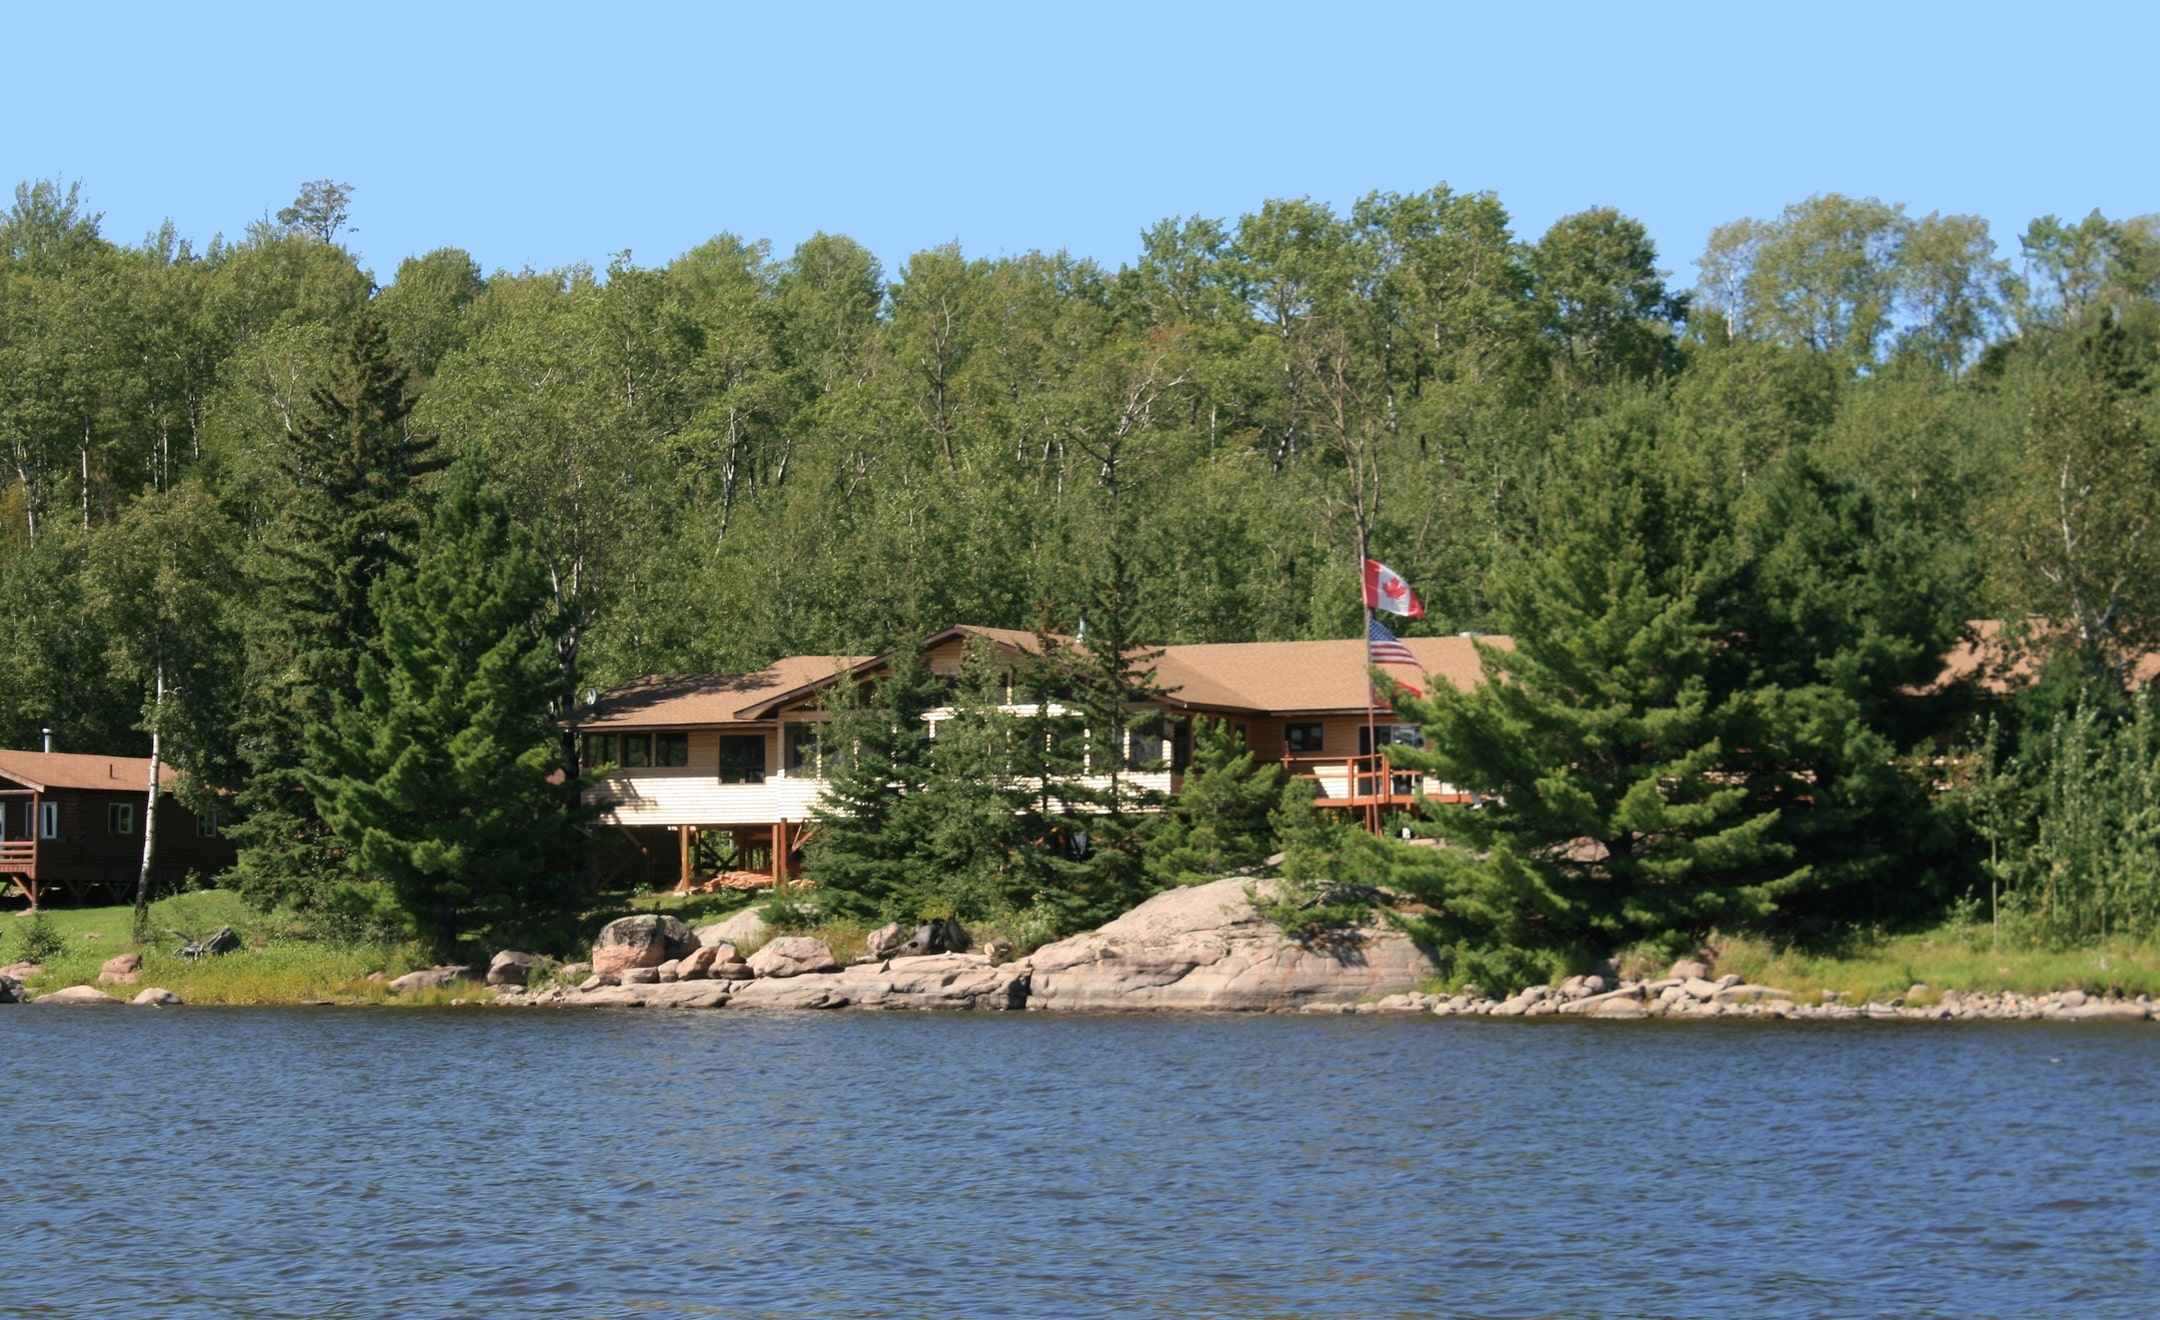 Maynard Lake Lodge and Outpost